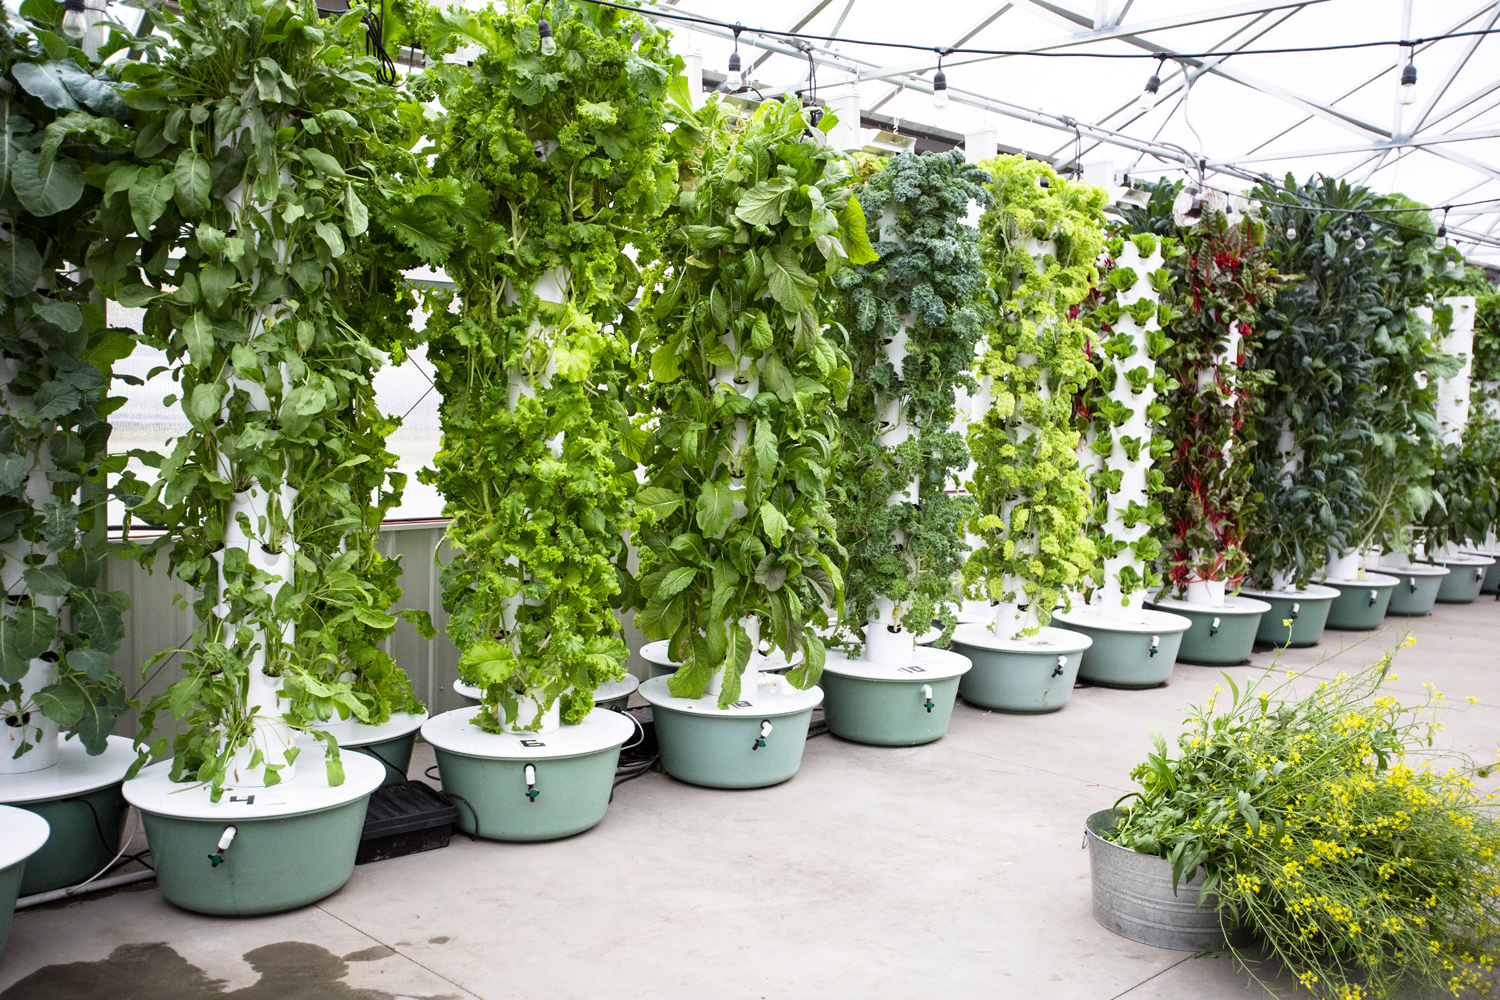 How To Use A Tower Garden: Everything You Need To Know